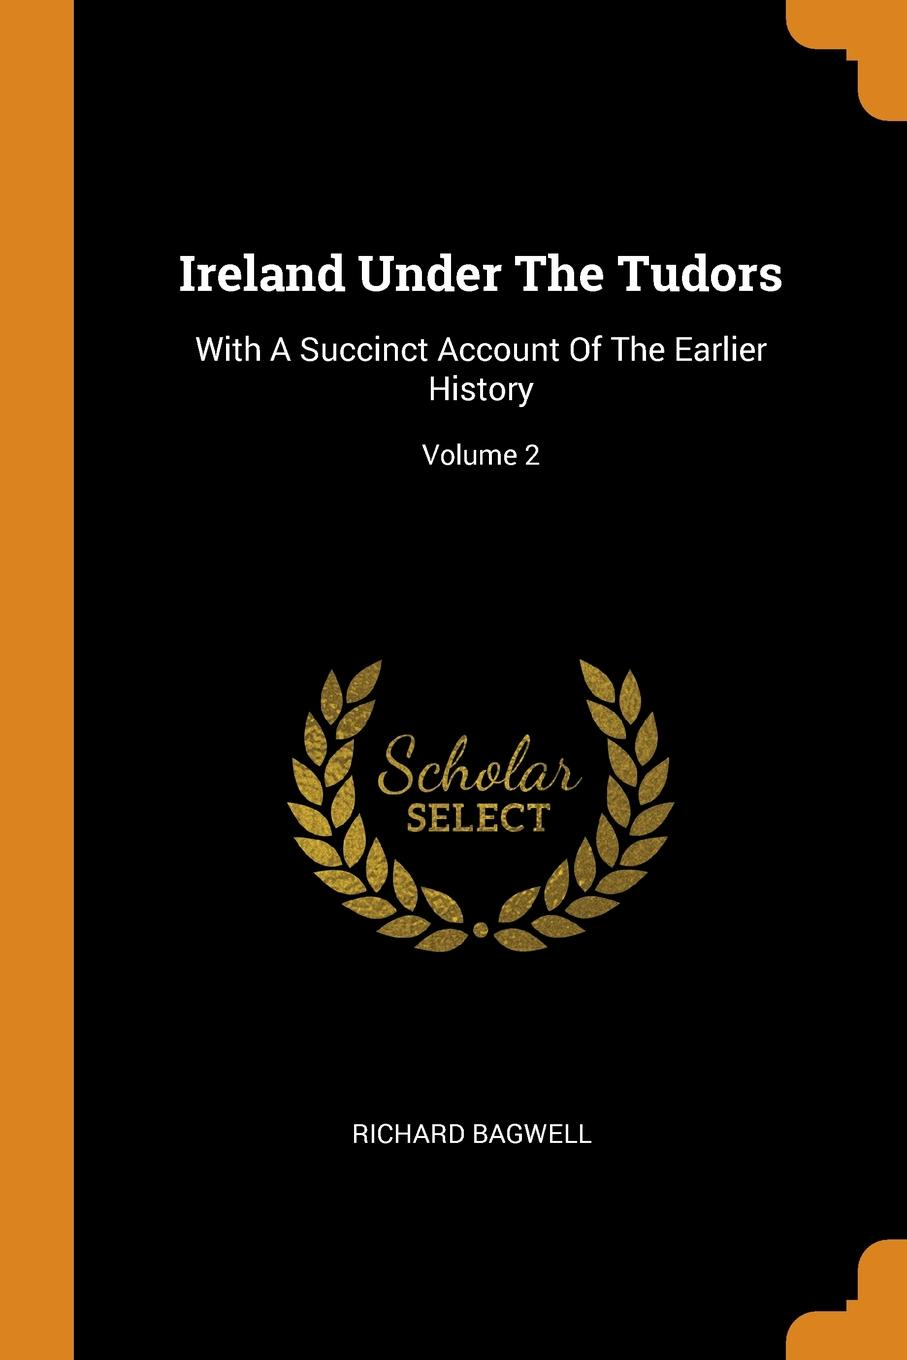 Richard Bagwell Ireland Under The Tudors. With A Succinct Account Of The Earlier History; Volume 2 bagwell richard ireland under the tudors with a succinct account of the earlier history vol 2 of 3